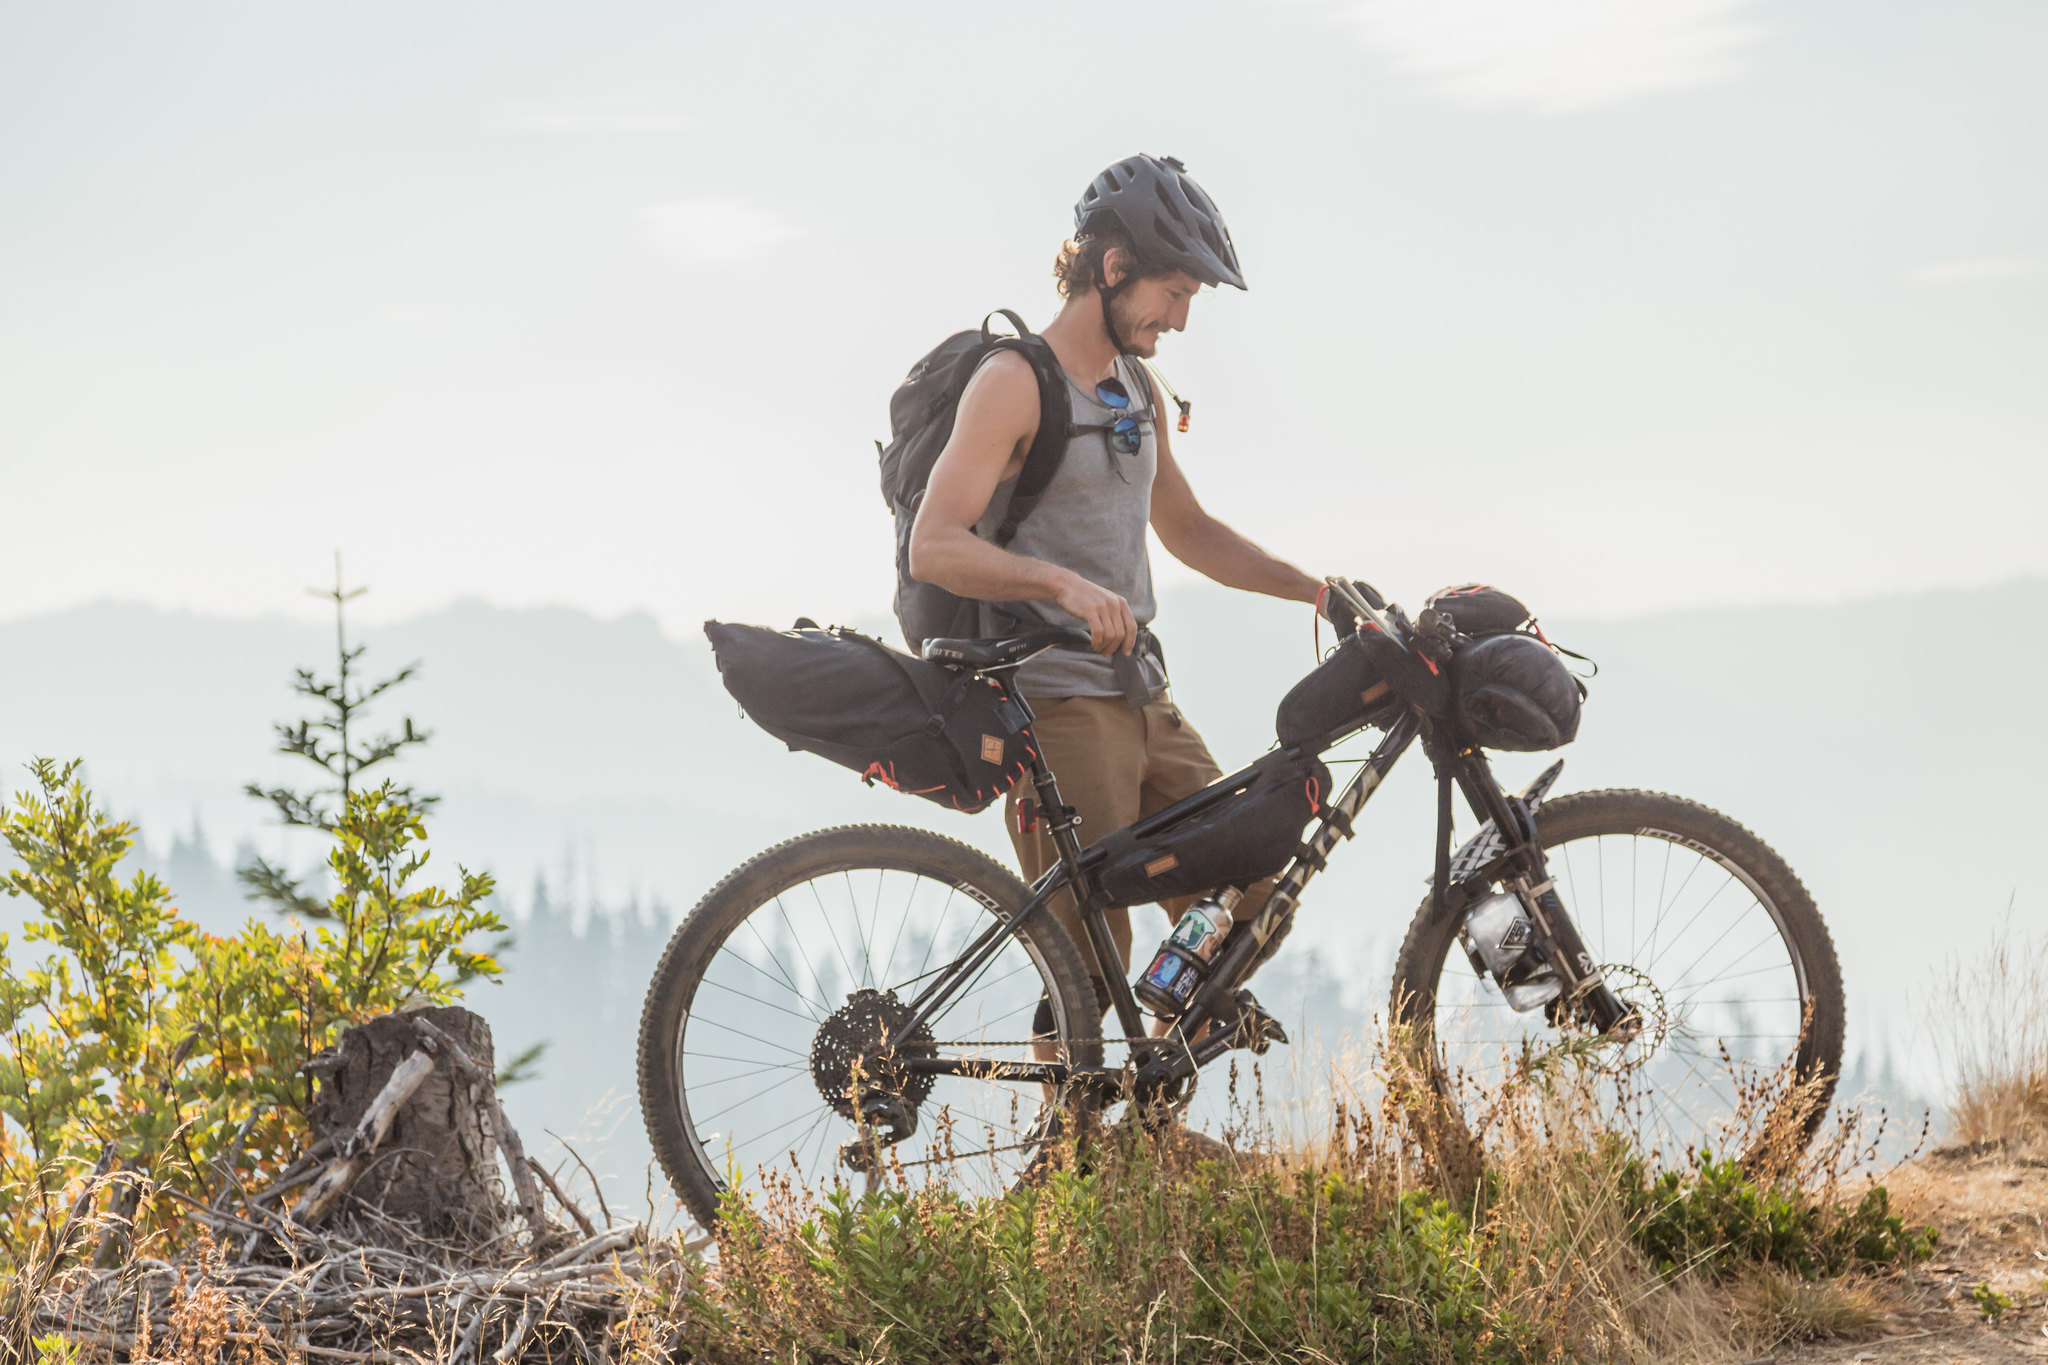 trash free trails, cotic trail fund, powered by cotic